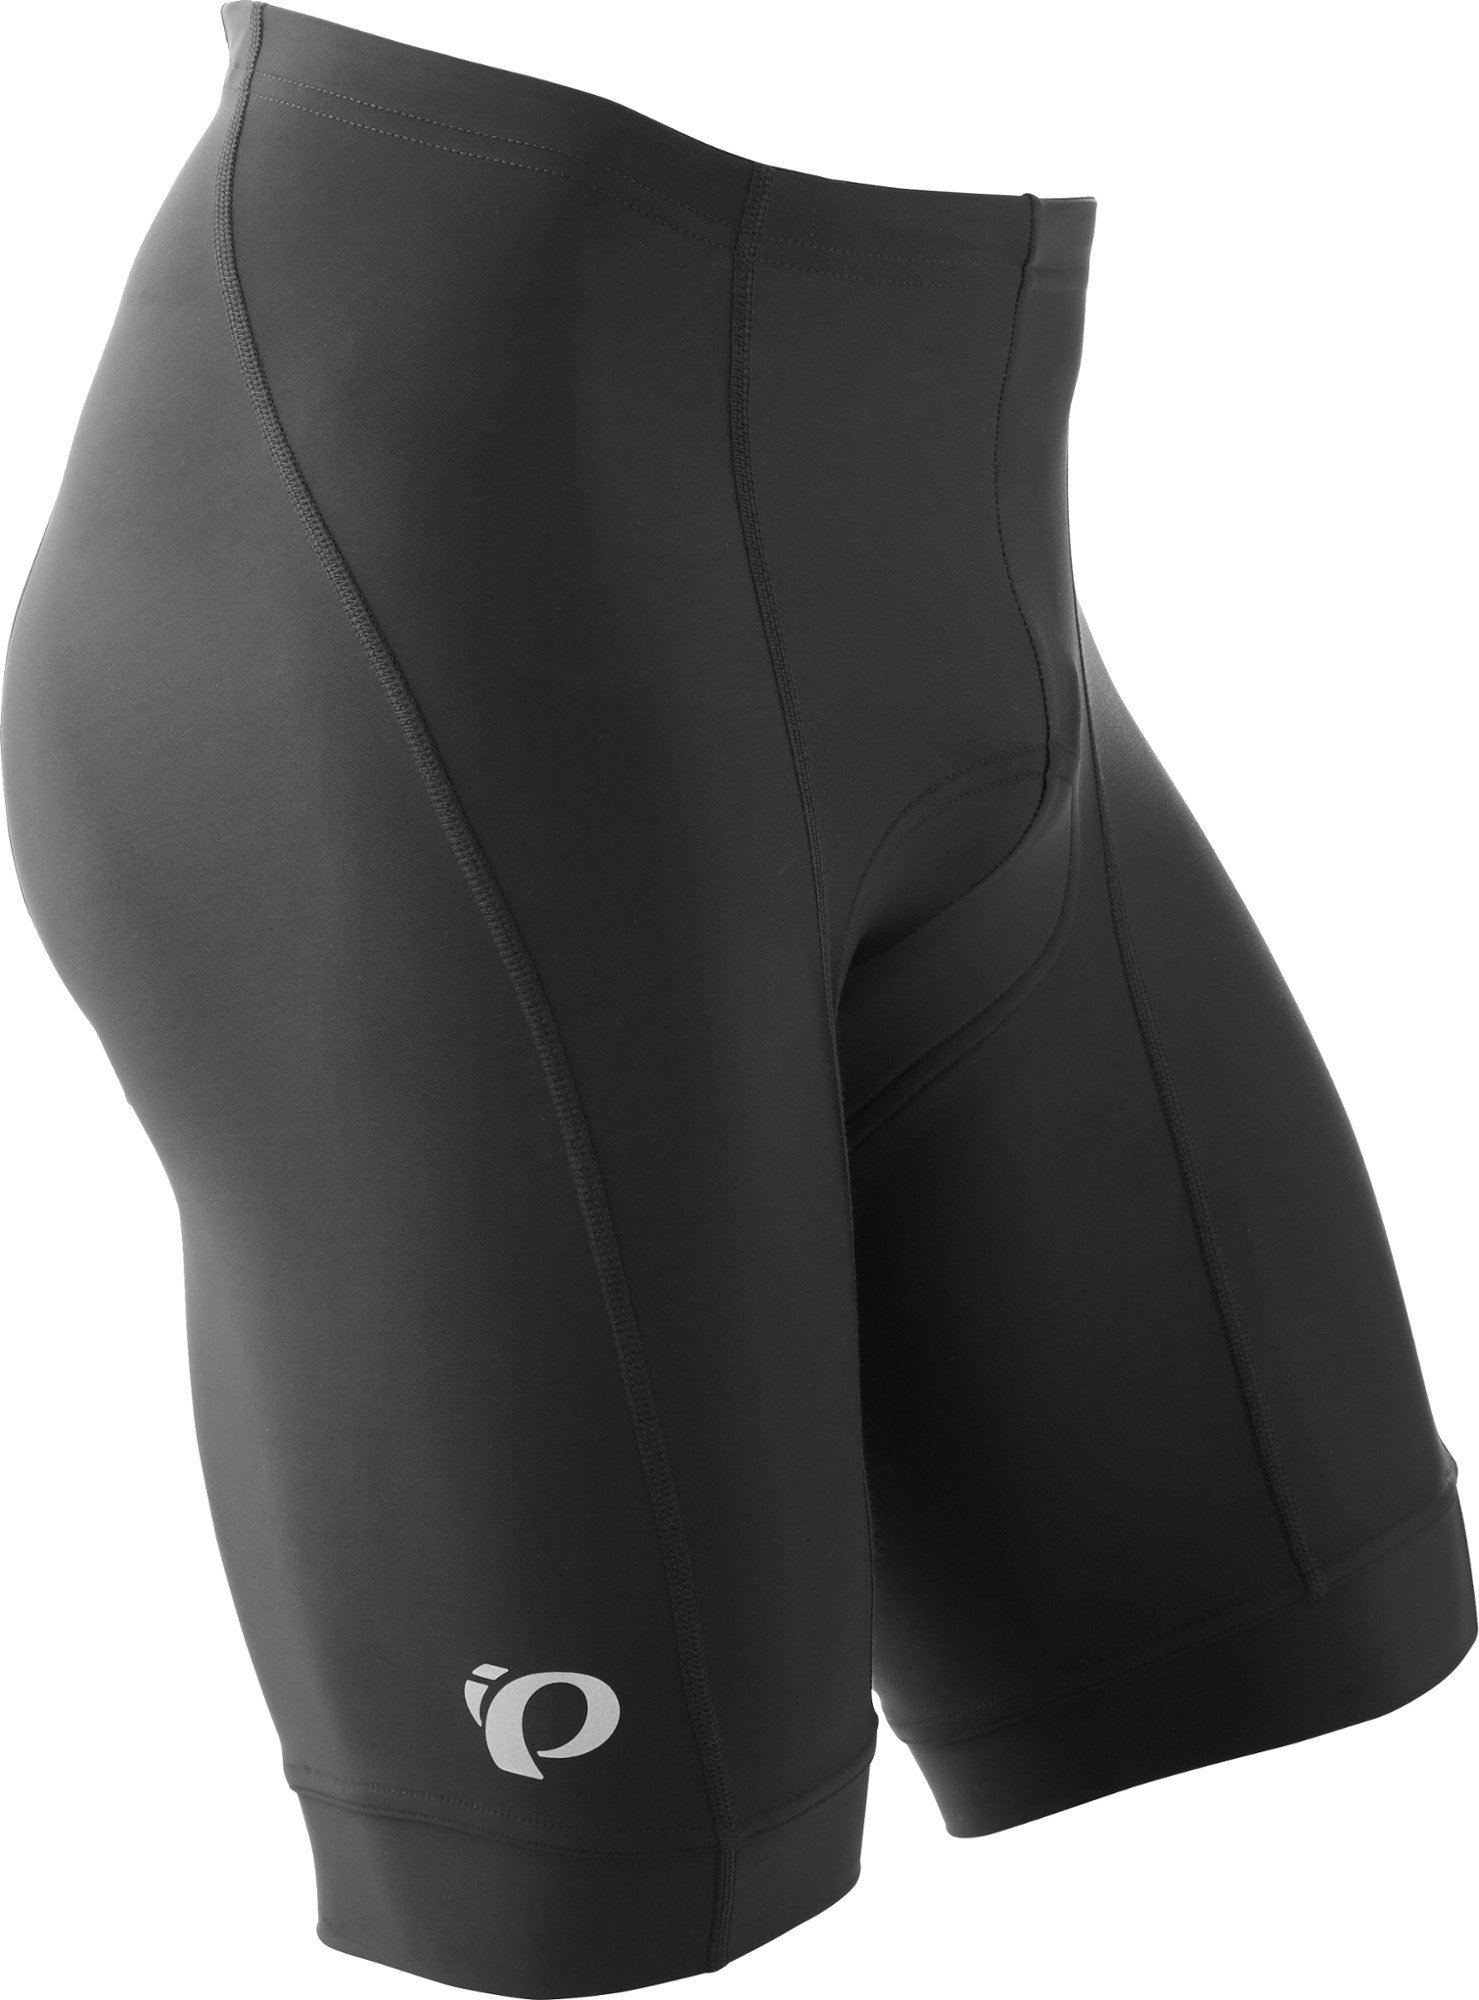 PEARL iZUMi Pursuit Attack Bike Shorts - Men's